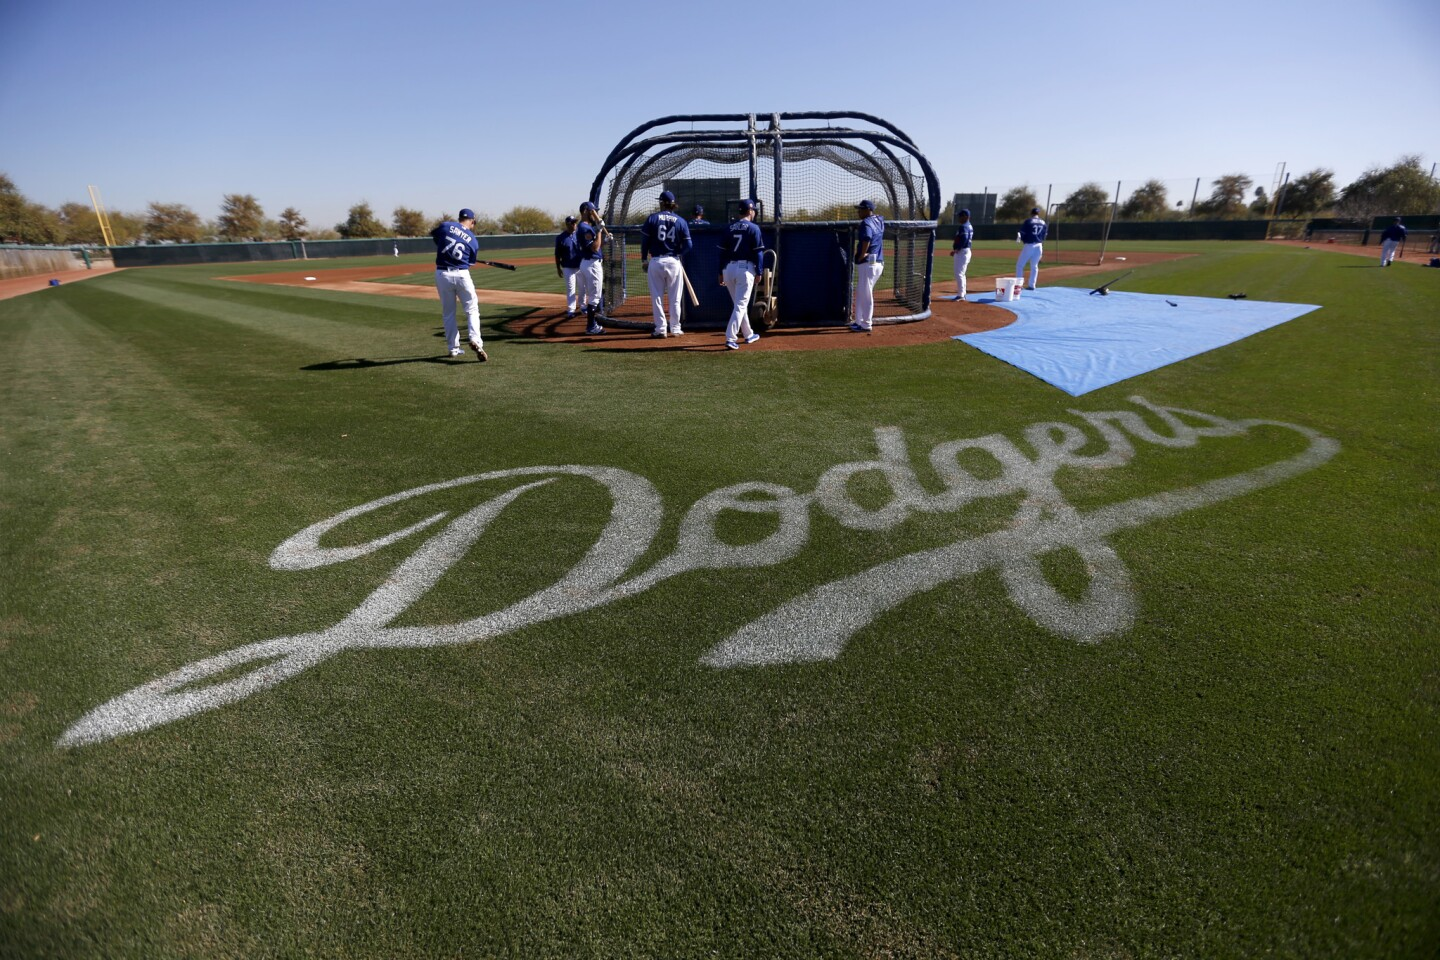 The Dodgers get ready for the grueling 162-game regular season (and, they hope, a long and victorious postseason) during spring training at Camelback Ranch in the Phoenix suburb of Glendale.